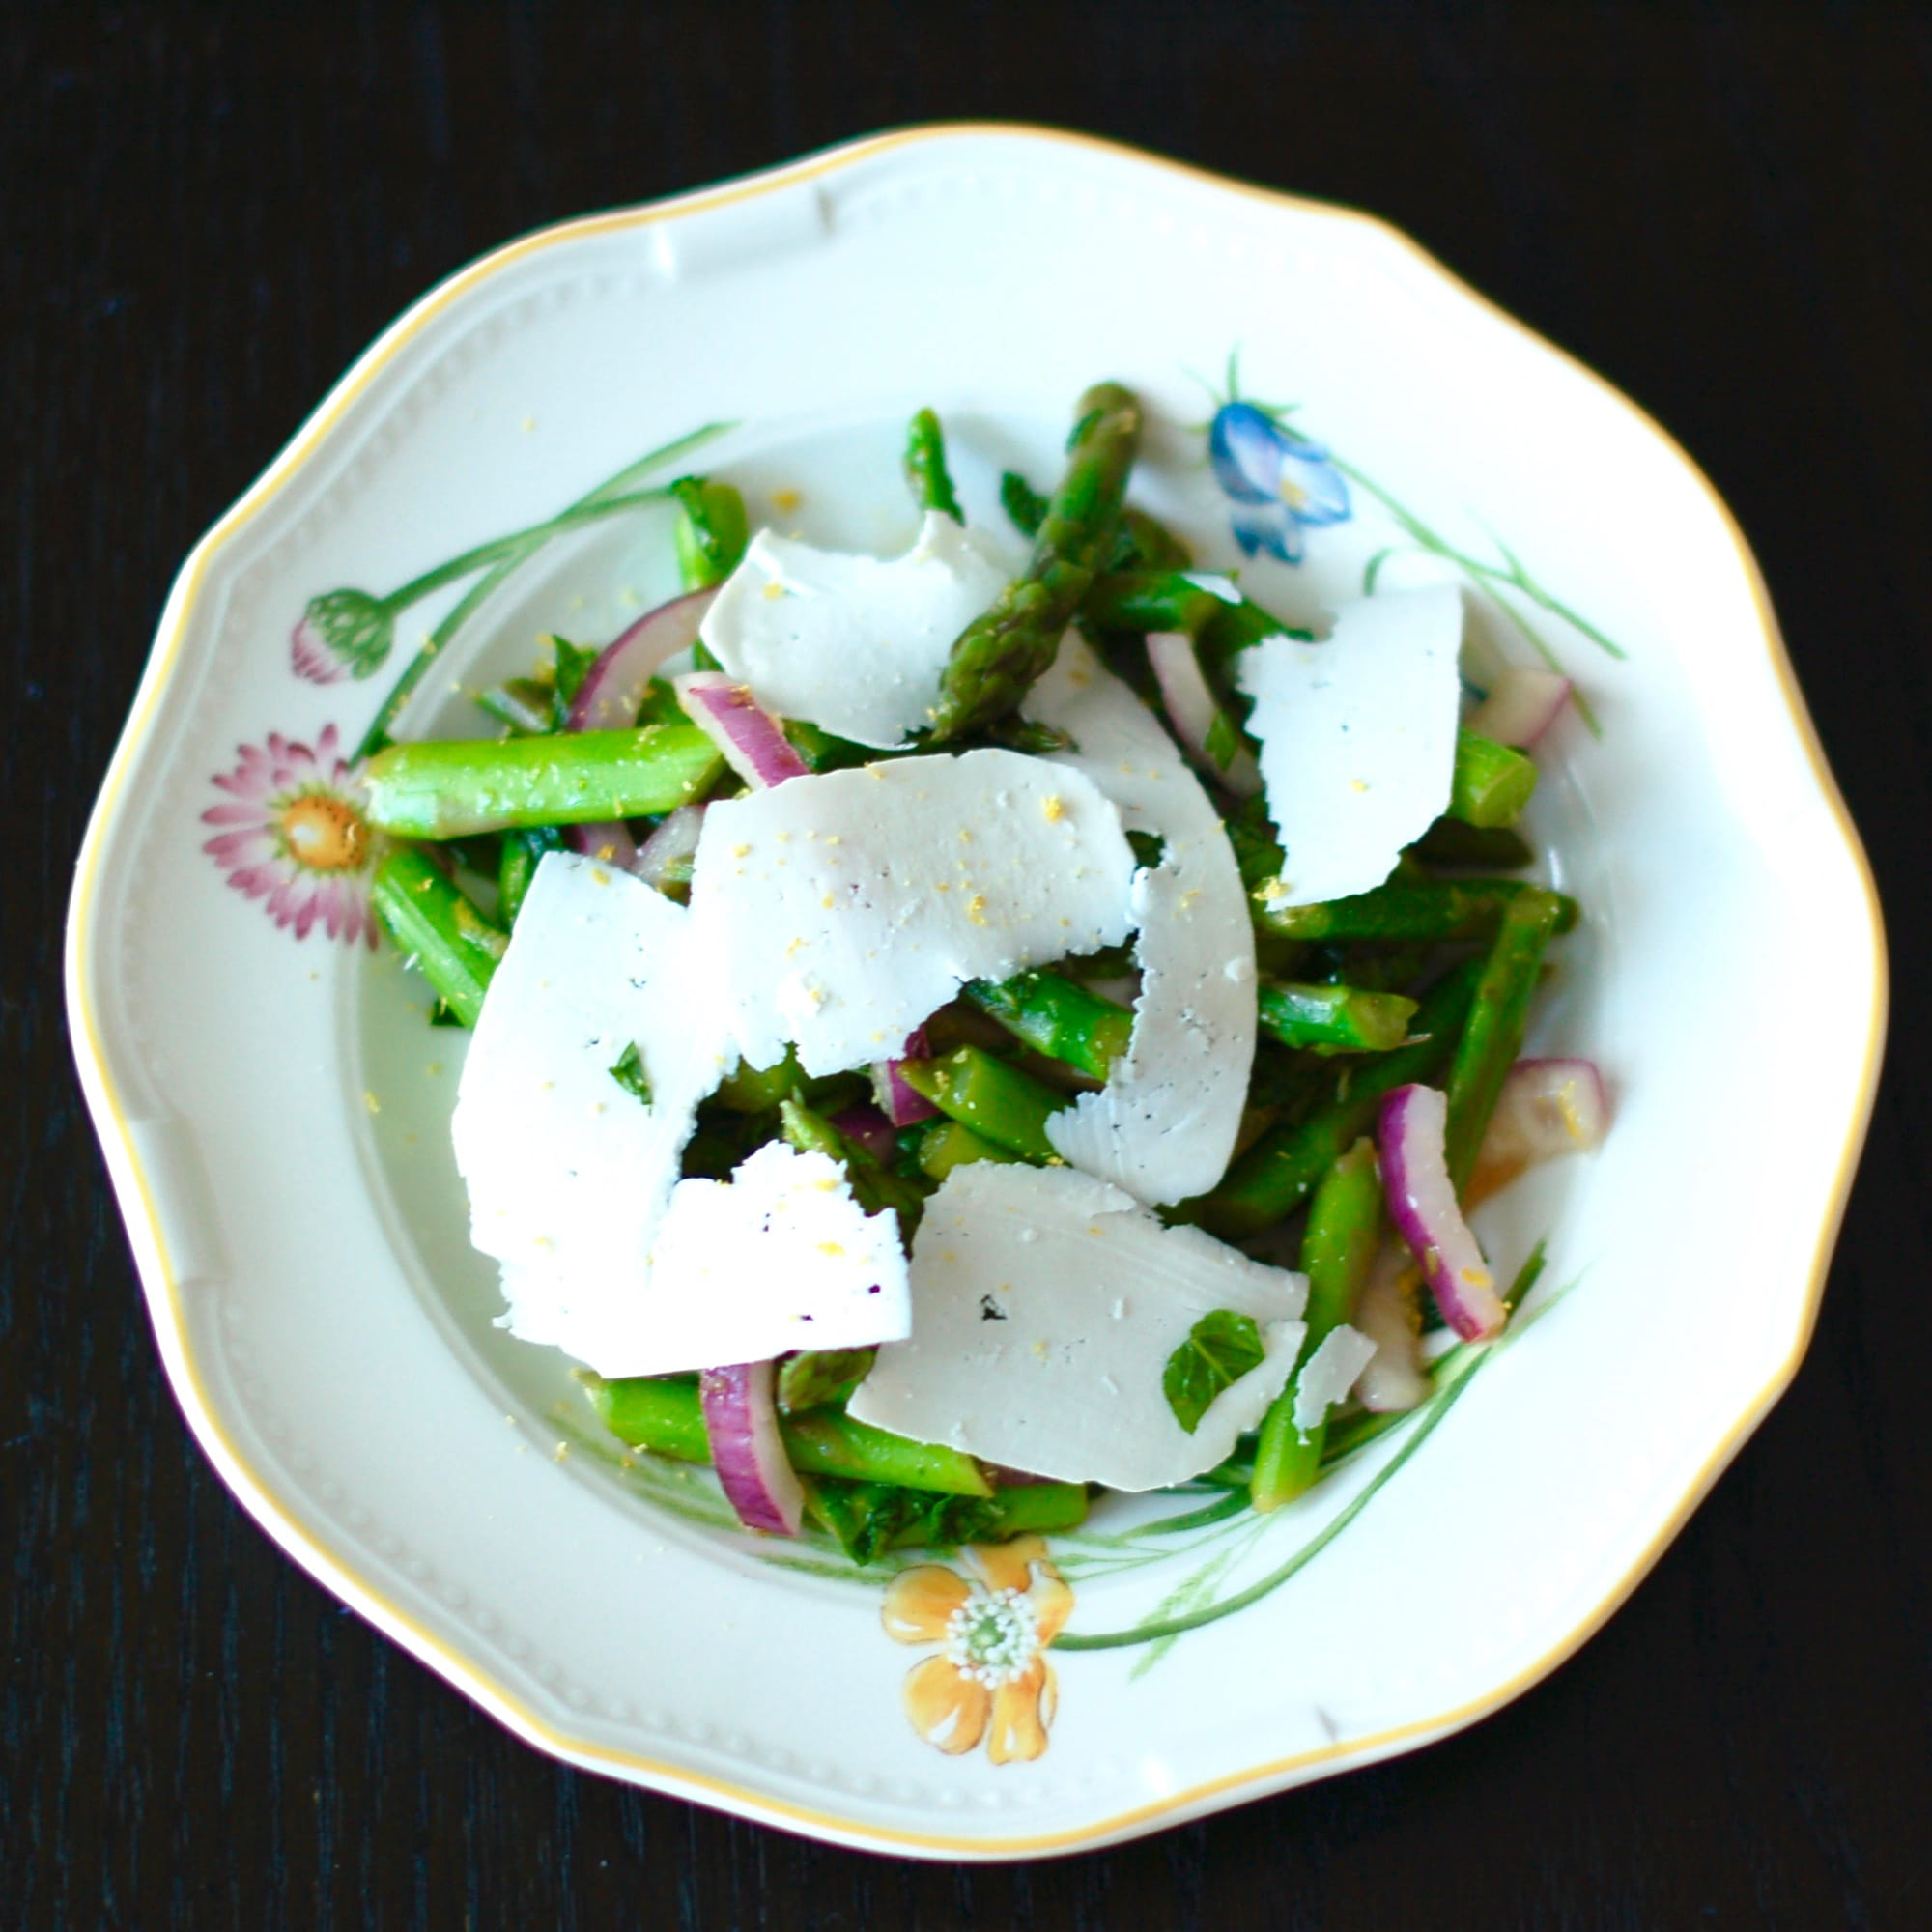 Earthy asparagus is tossed with crisp red onions, refreshing mint, zesty lemon, and salty ricotta salata cheese in this Asparagus Mint Salad that will get you in the spirit of spring and wake up your taste buds. Get the vegetarian and gluten-free recipe at JessicaLevinson.com